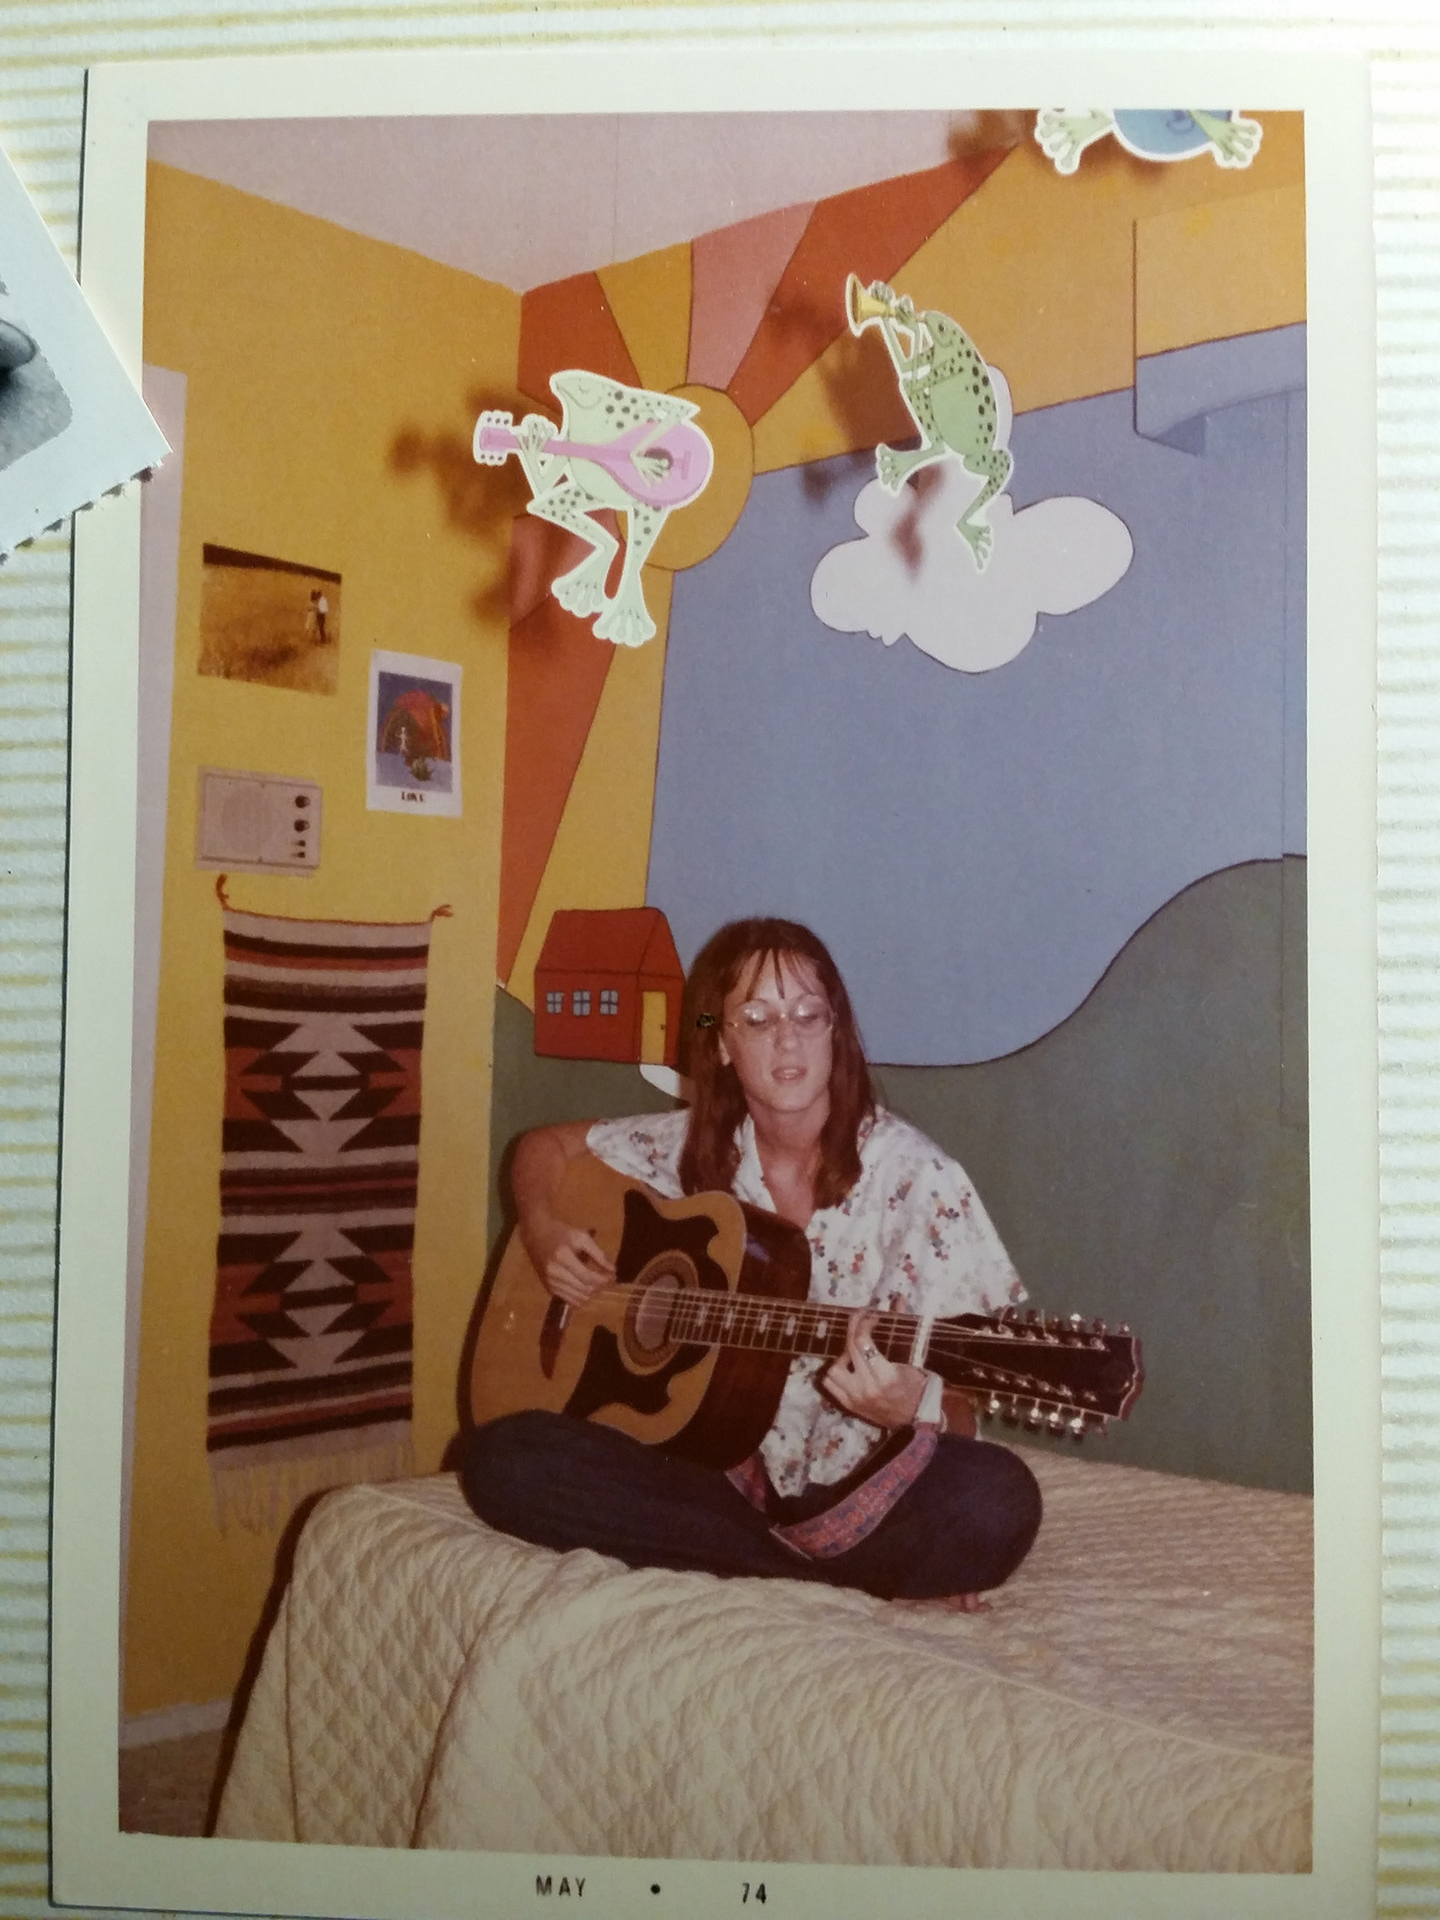 Kat morris murals best chattanooga mural painter peter max mural teen girls bedroom mural this is kat morris first mural although this picture is taken of me playing my guitar on the bed in 1974 amipublicfo Images